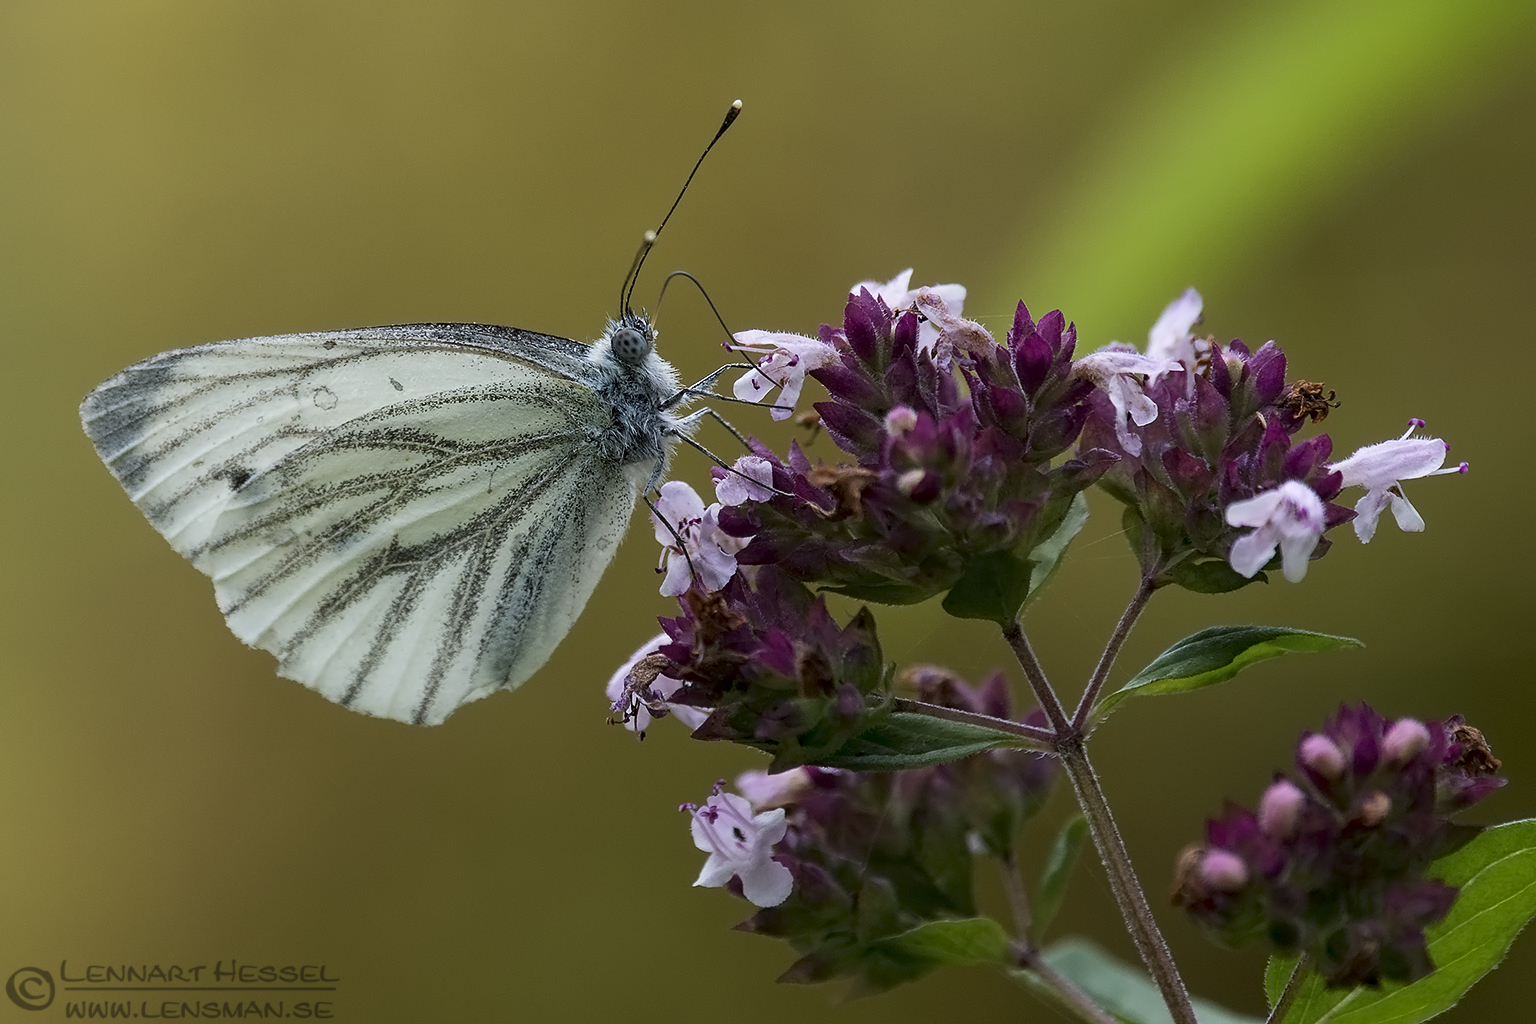 Green-veined white deer photography